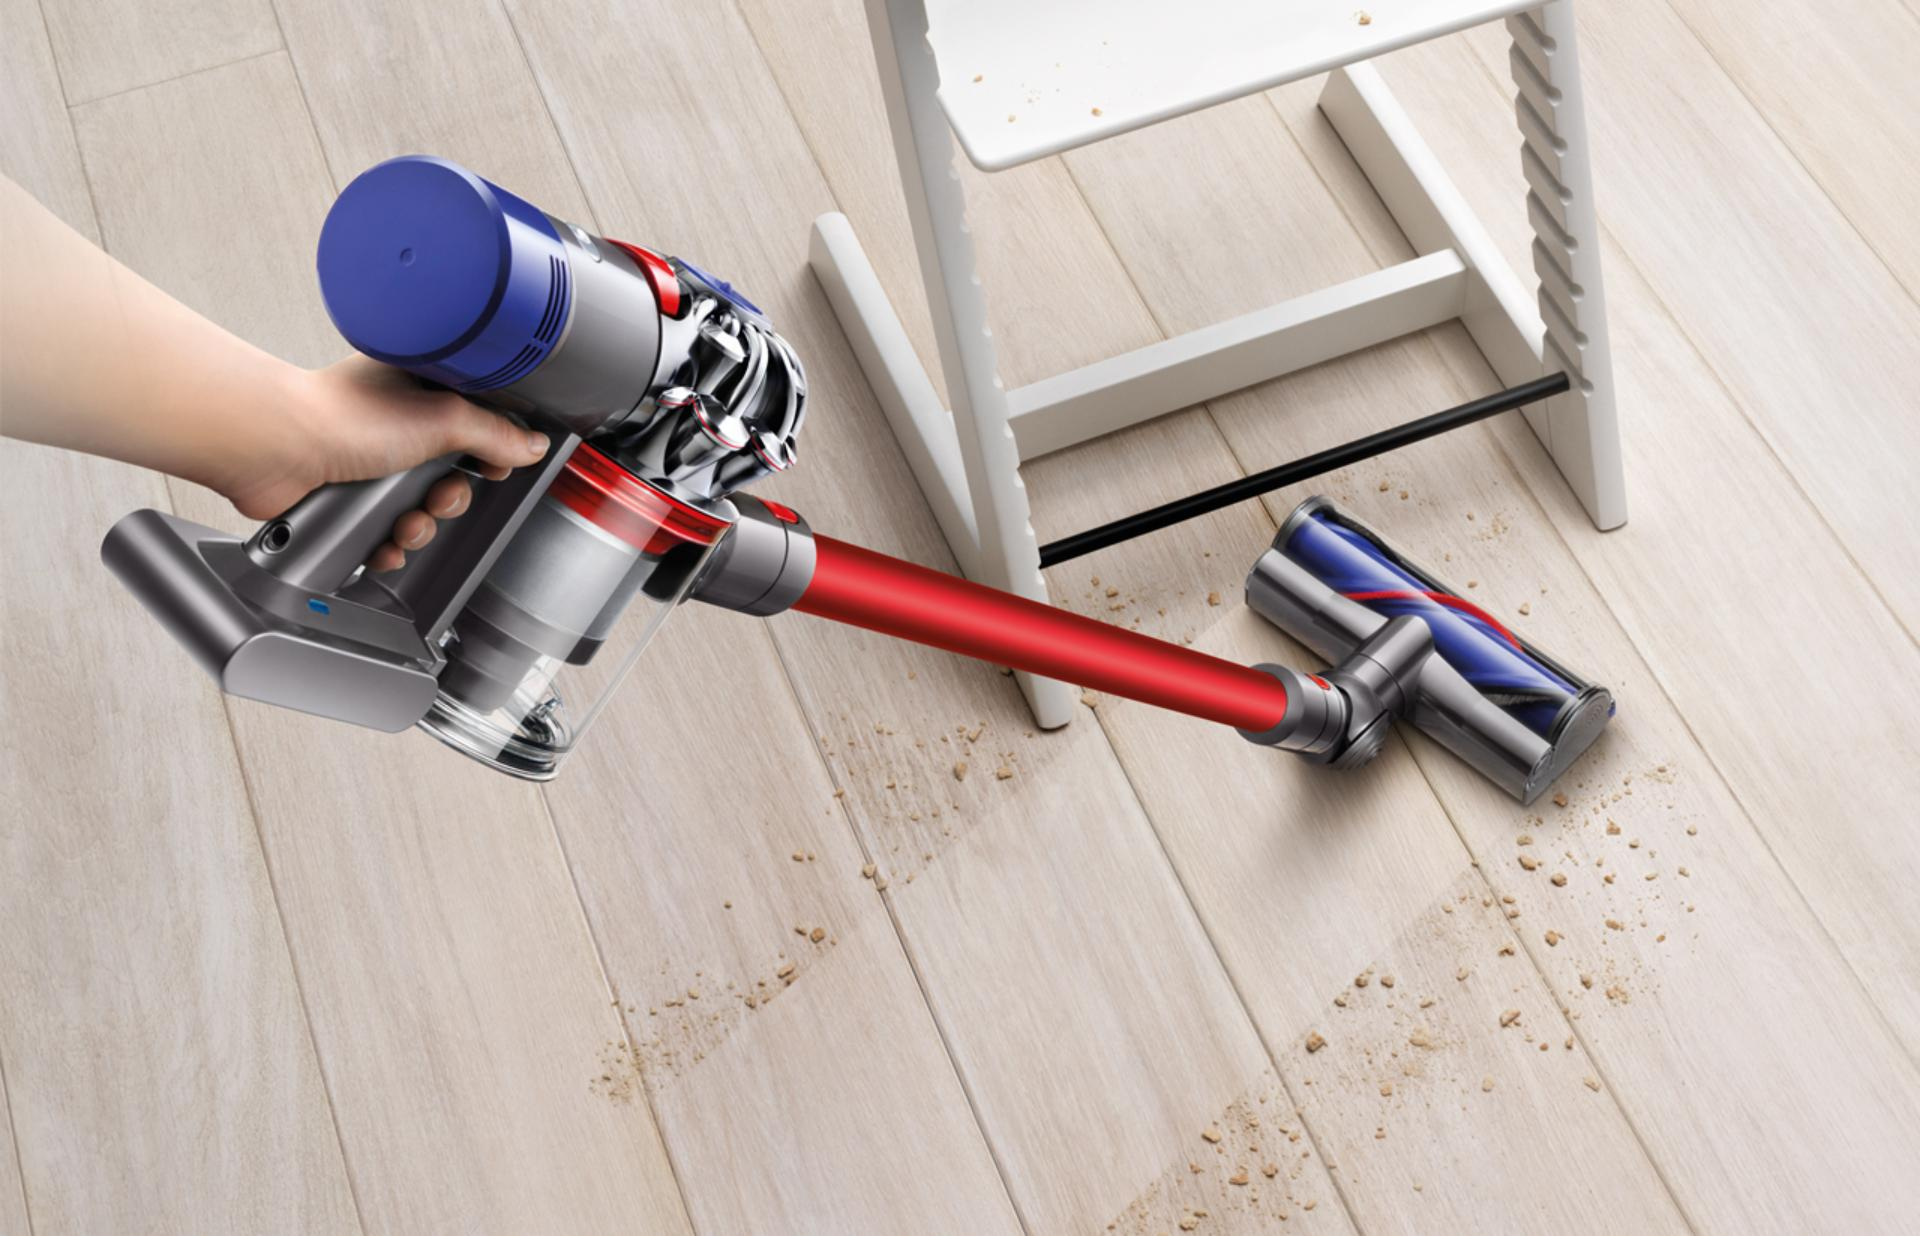 Dyson V7 cleaning wood floors